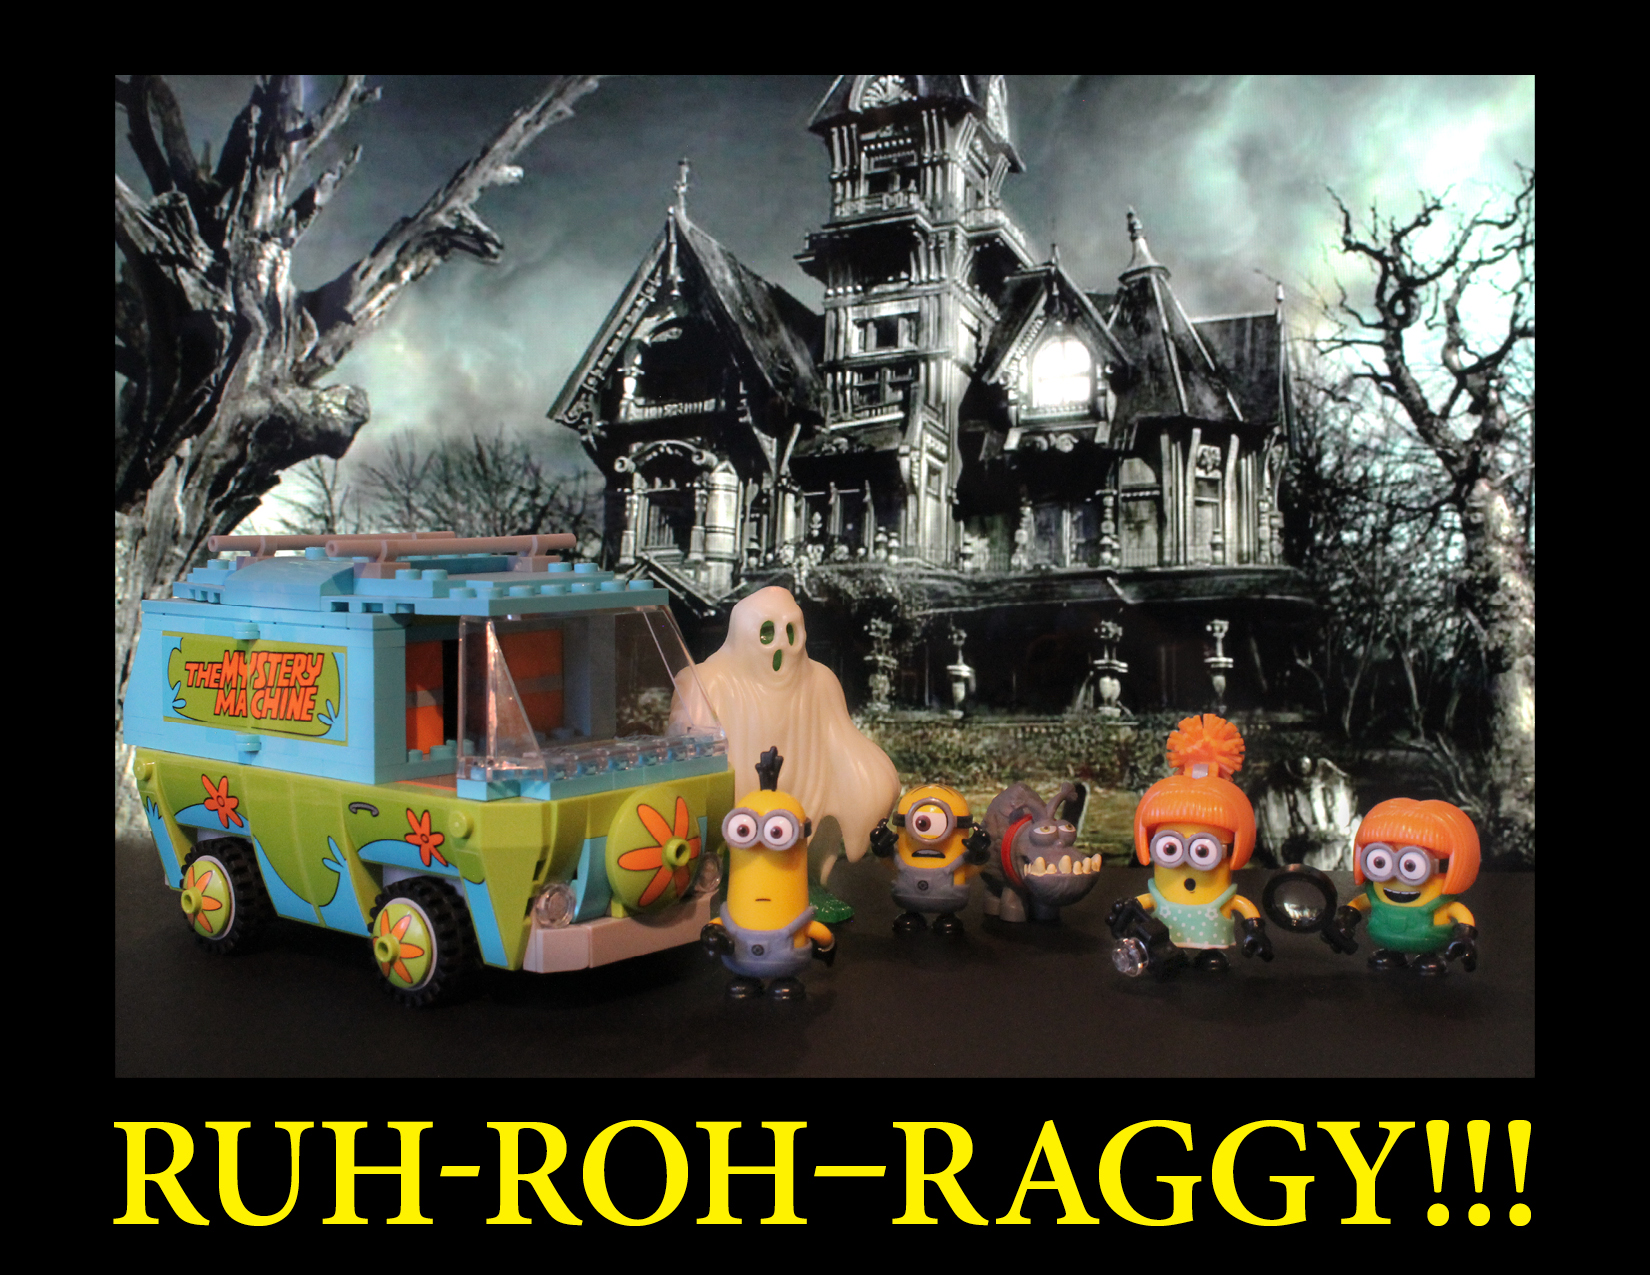 Four minions and the despicable me dog representing the Scooby-Doo gang, the mystery machine and a large ghost standing in front of a haunted house.